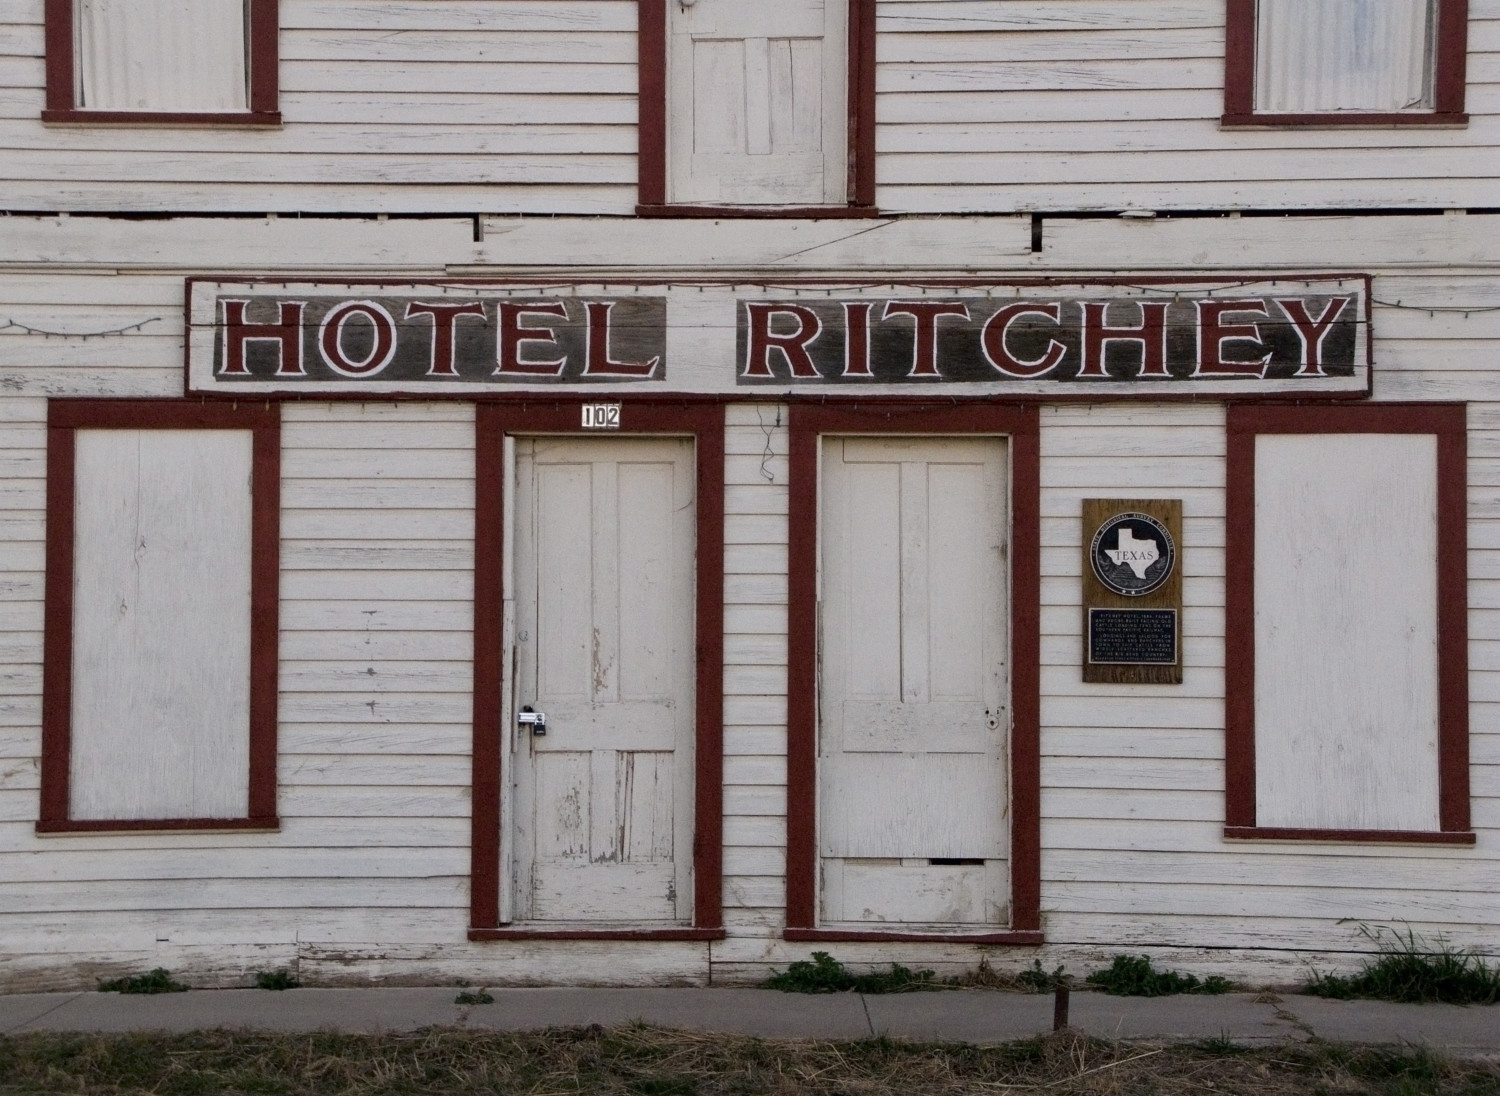 Hotel Richey, Alpine, Texas, December 2008